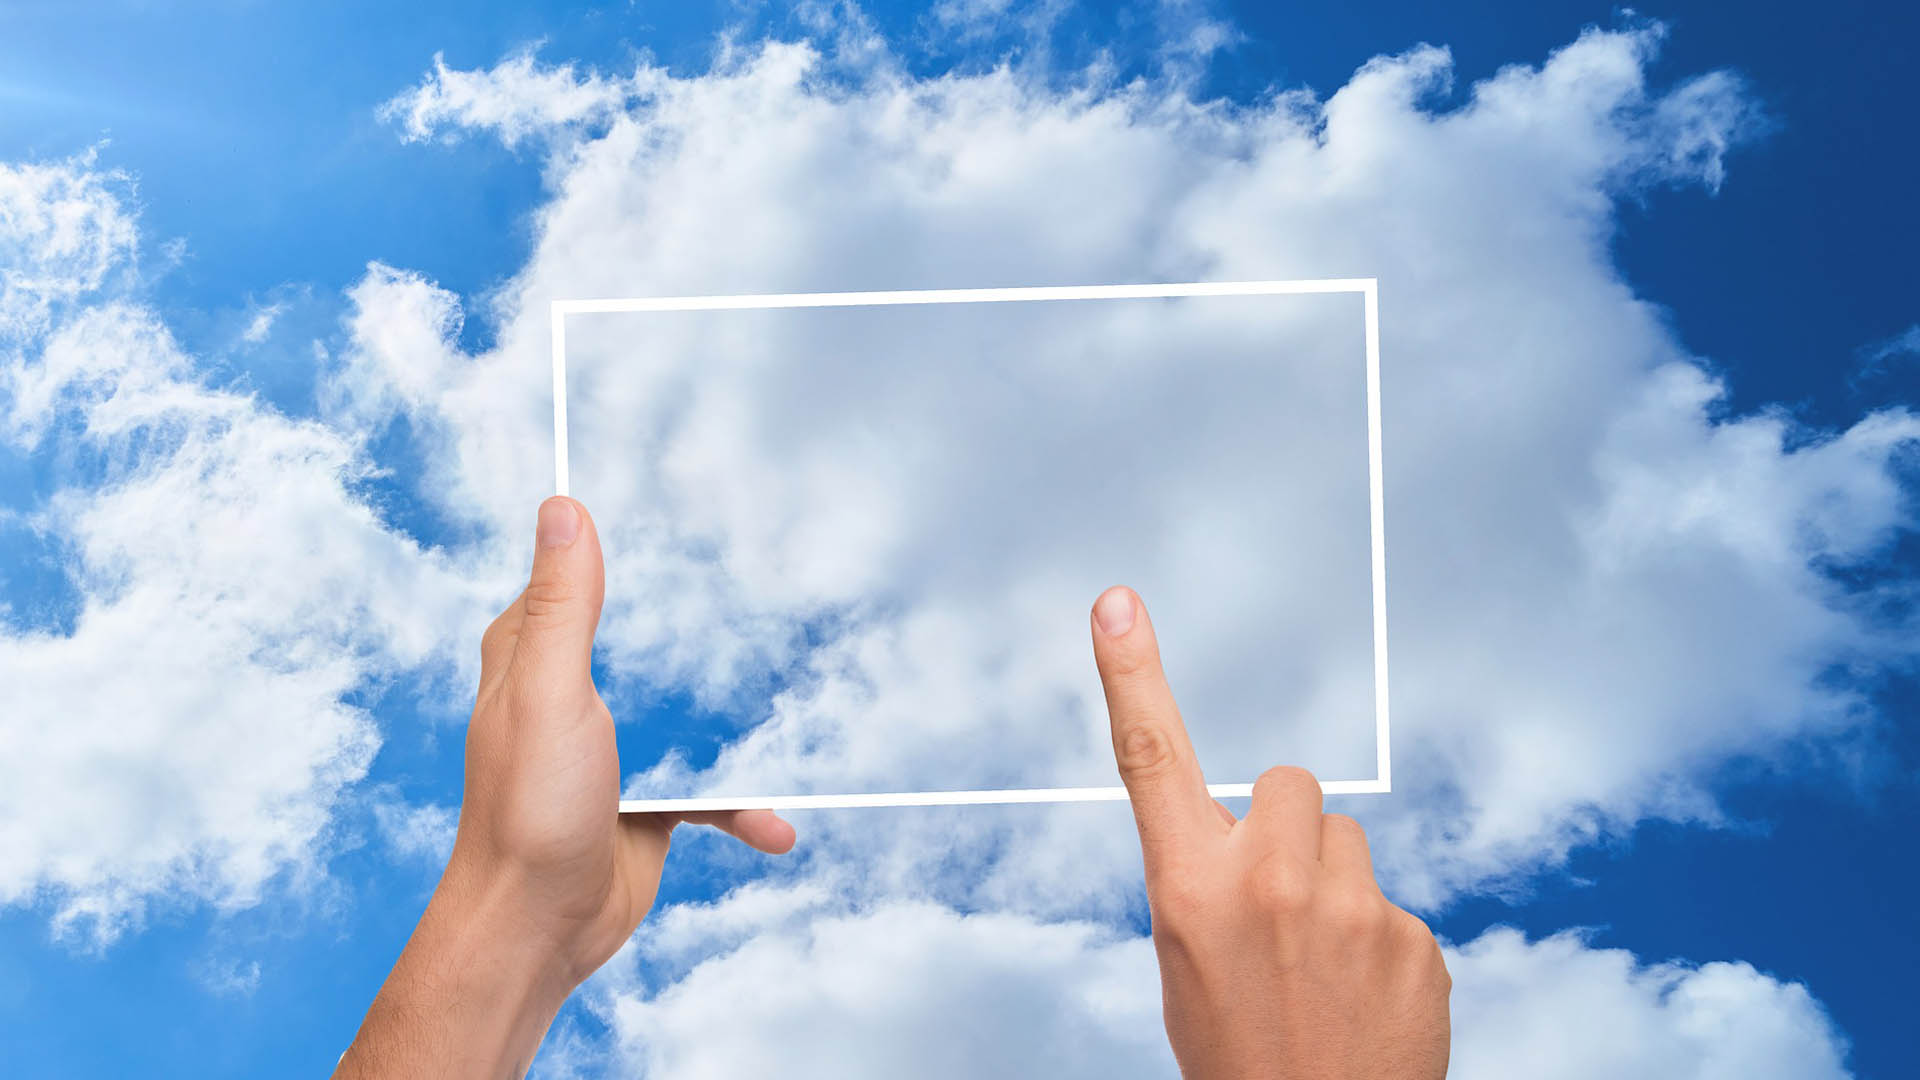 Implementare il cloud computing